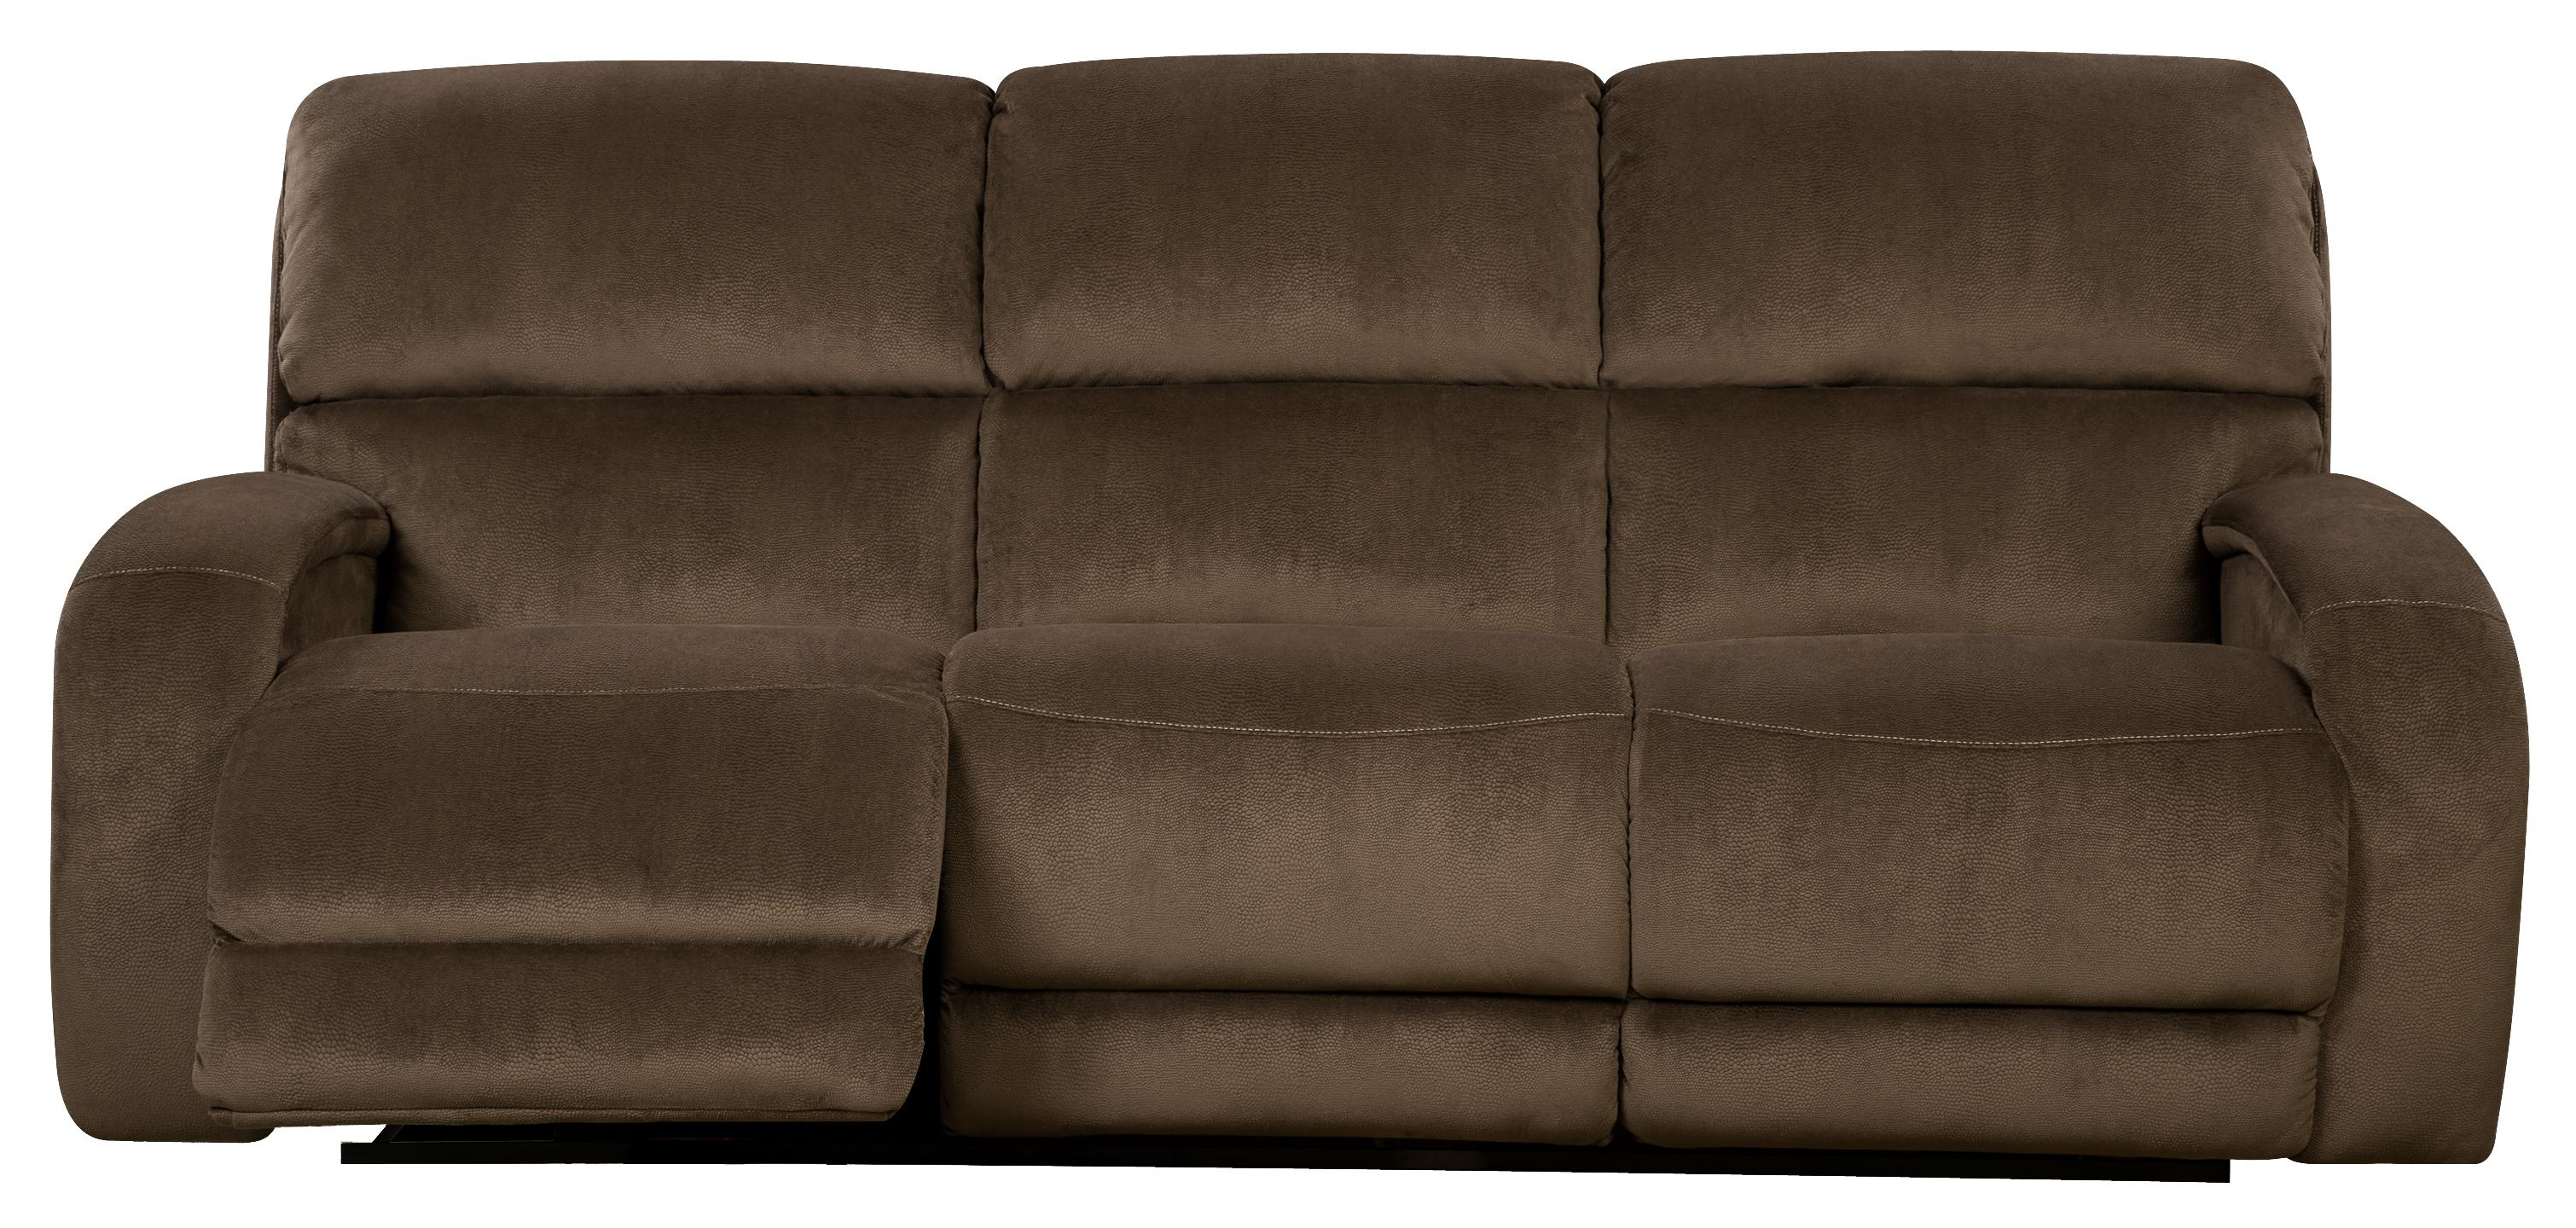 Power Reclining Sofa With Casual Style For Family Rooms By